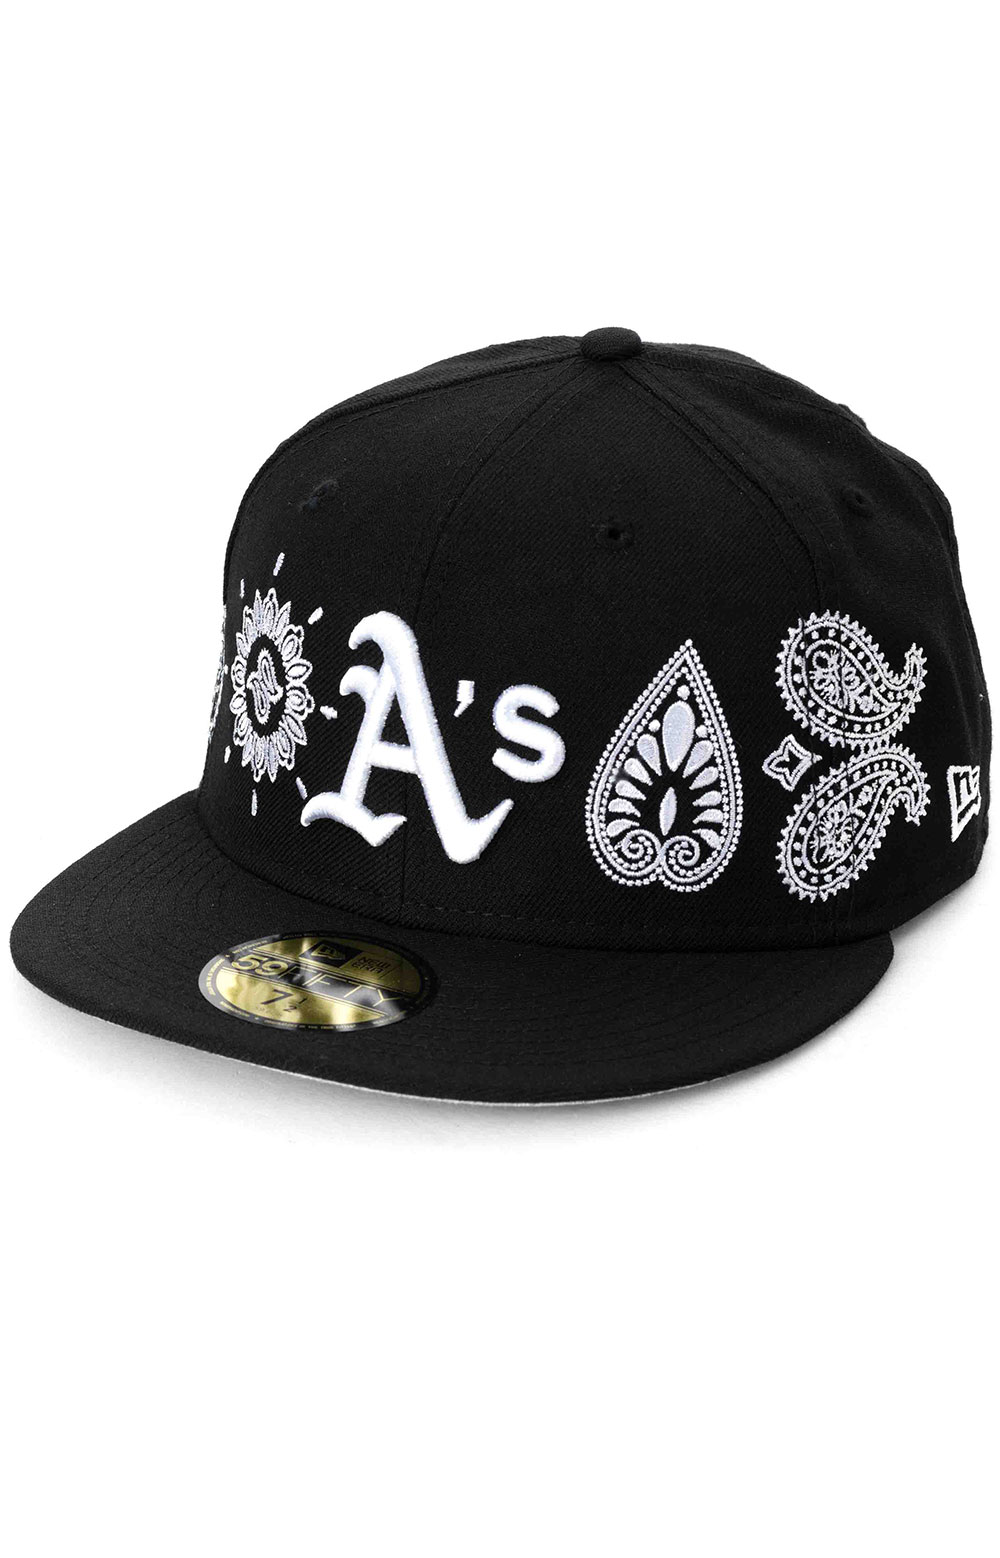 Oakland Athletics Paisley Elements 59Fifty Fitted Hat - Black